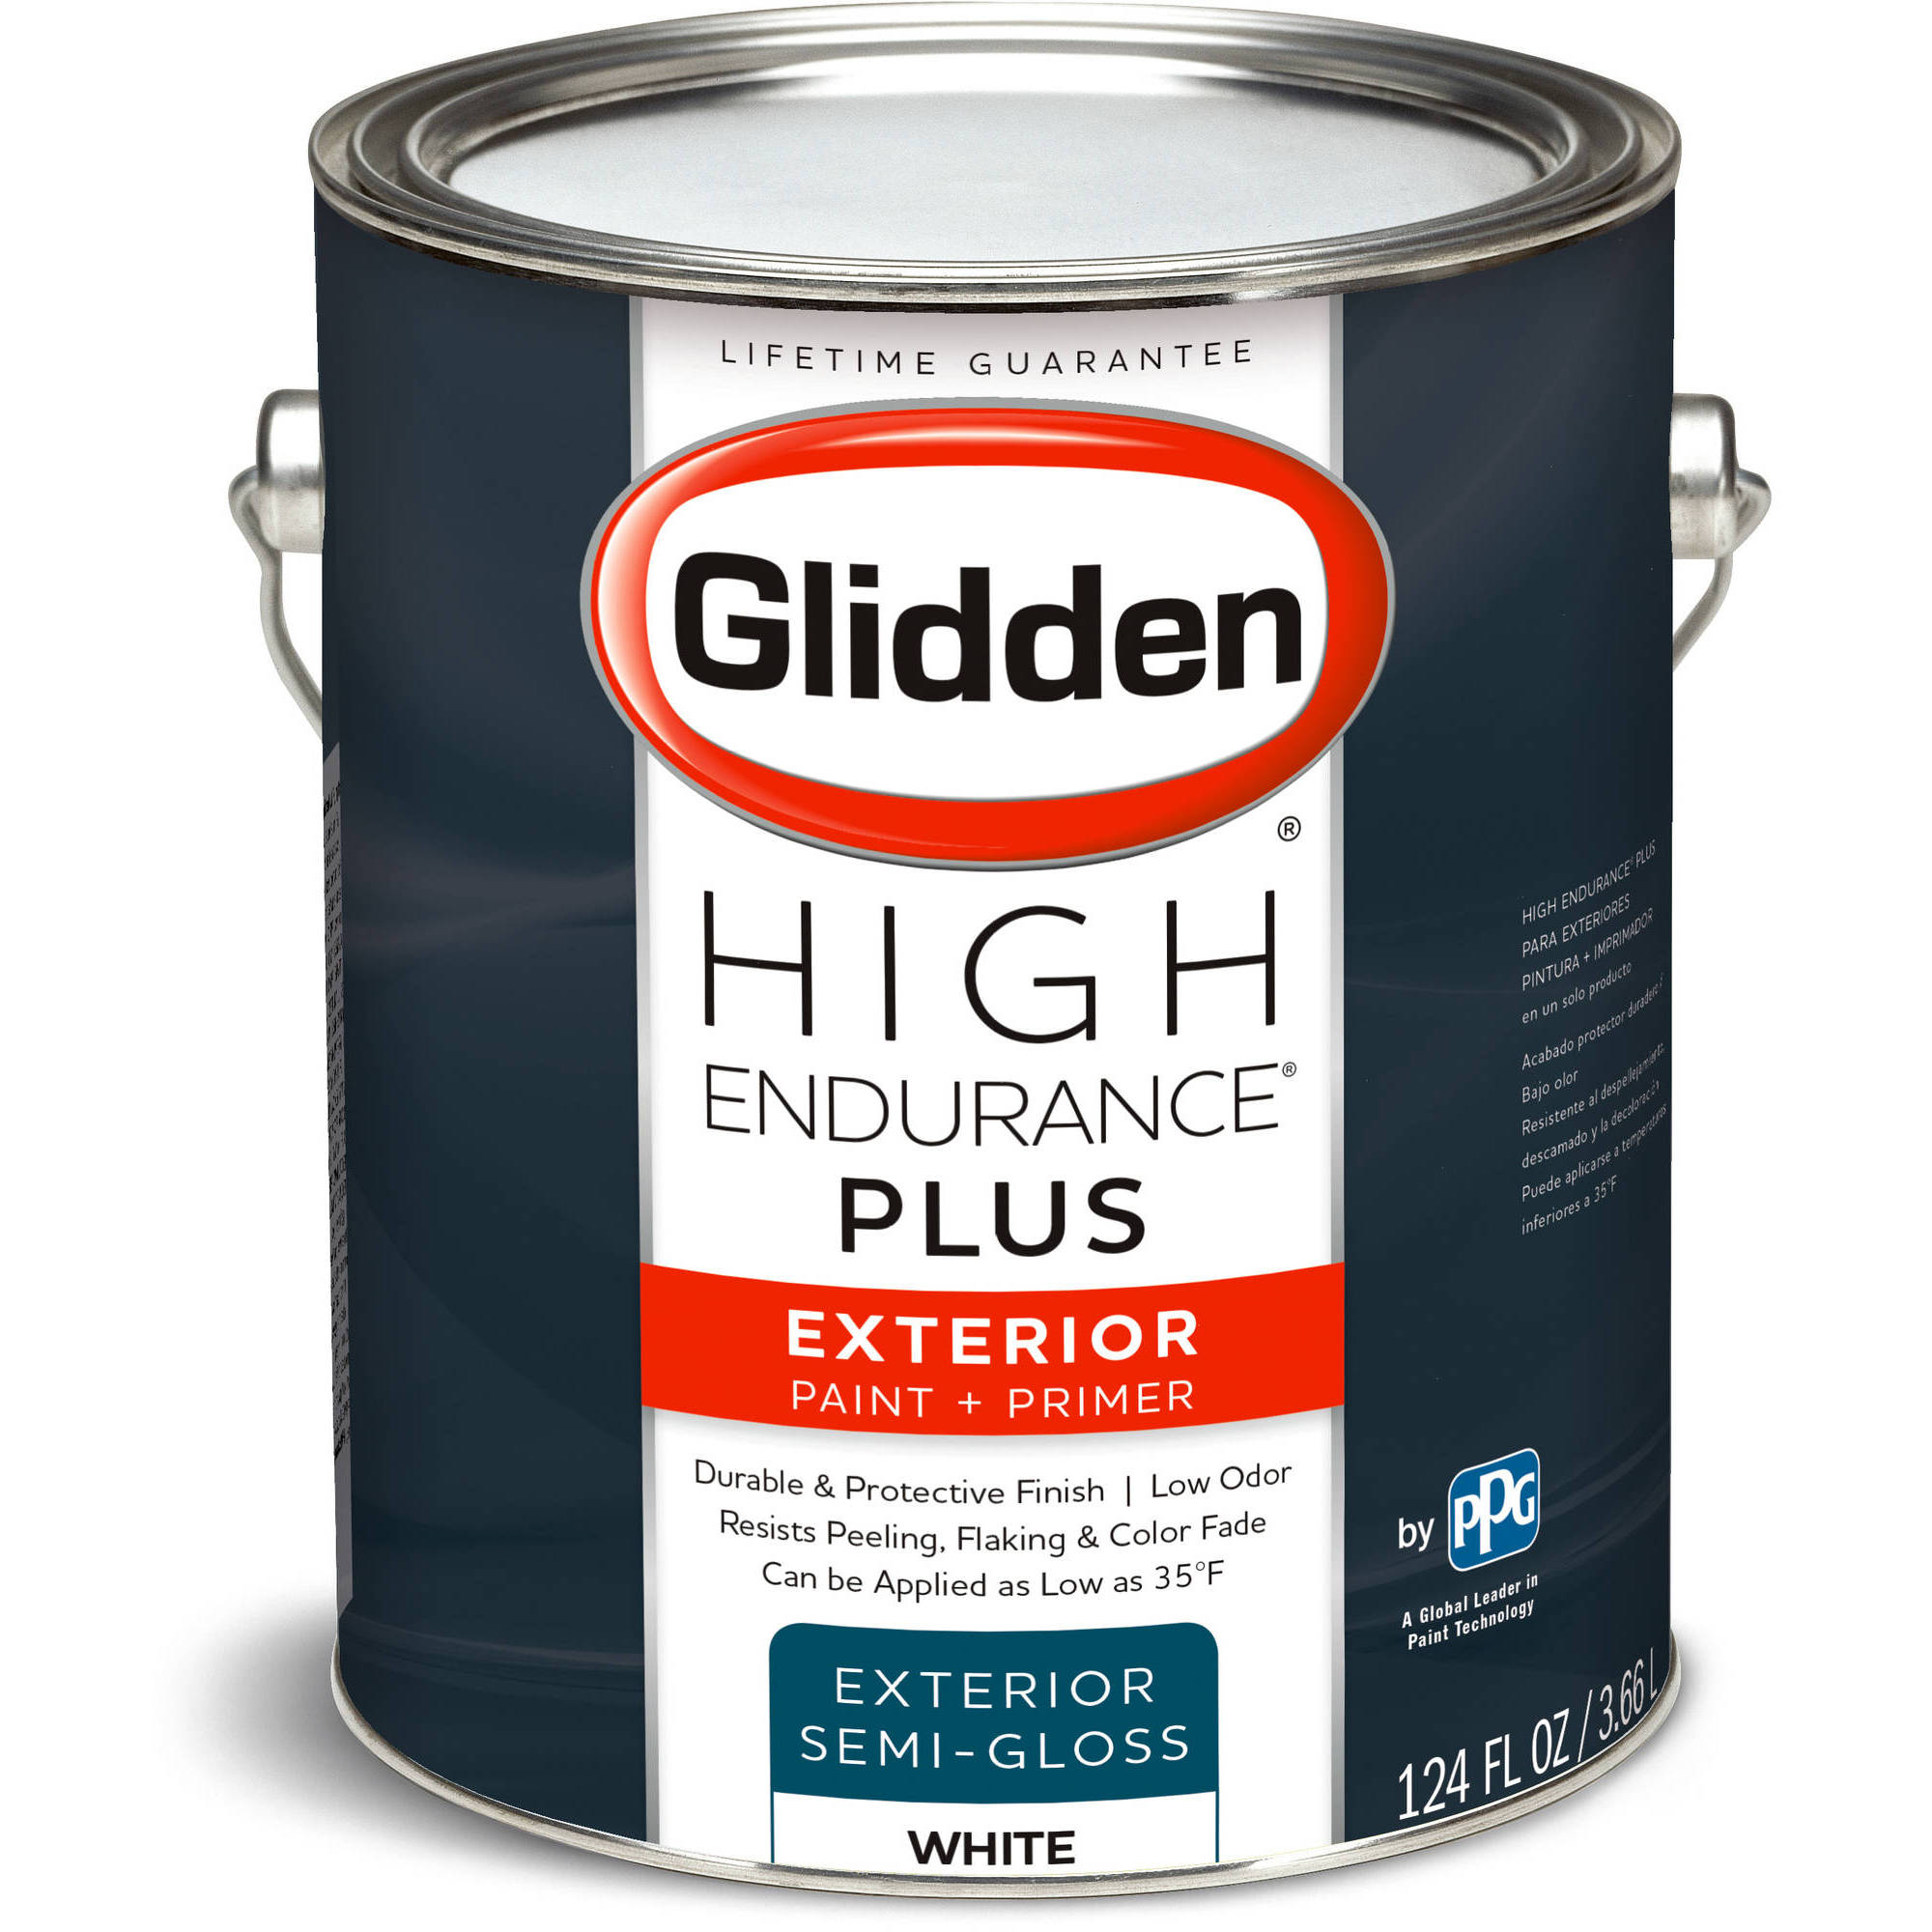 glidden high endurance plus exterior paint and primer semigloss finish ready mix white 1 gallon walmartcom